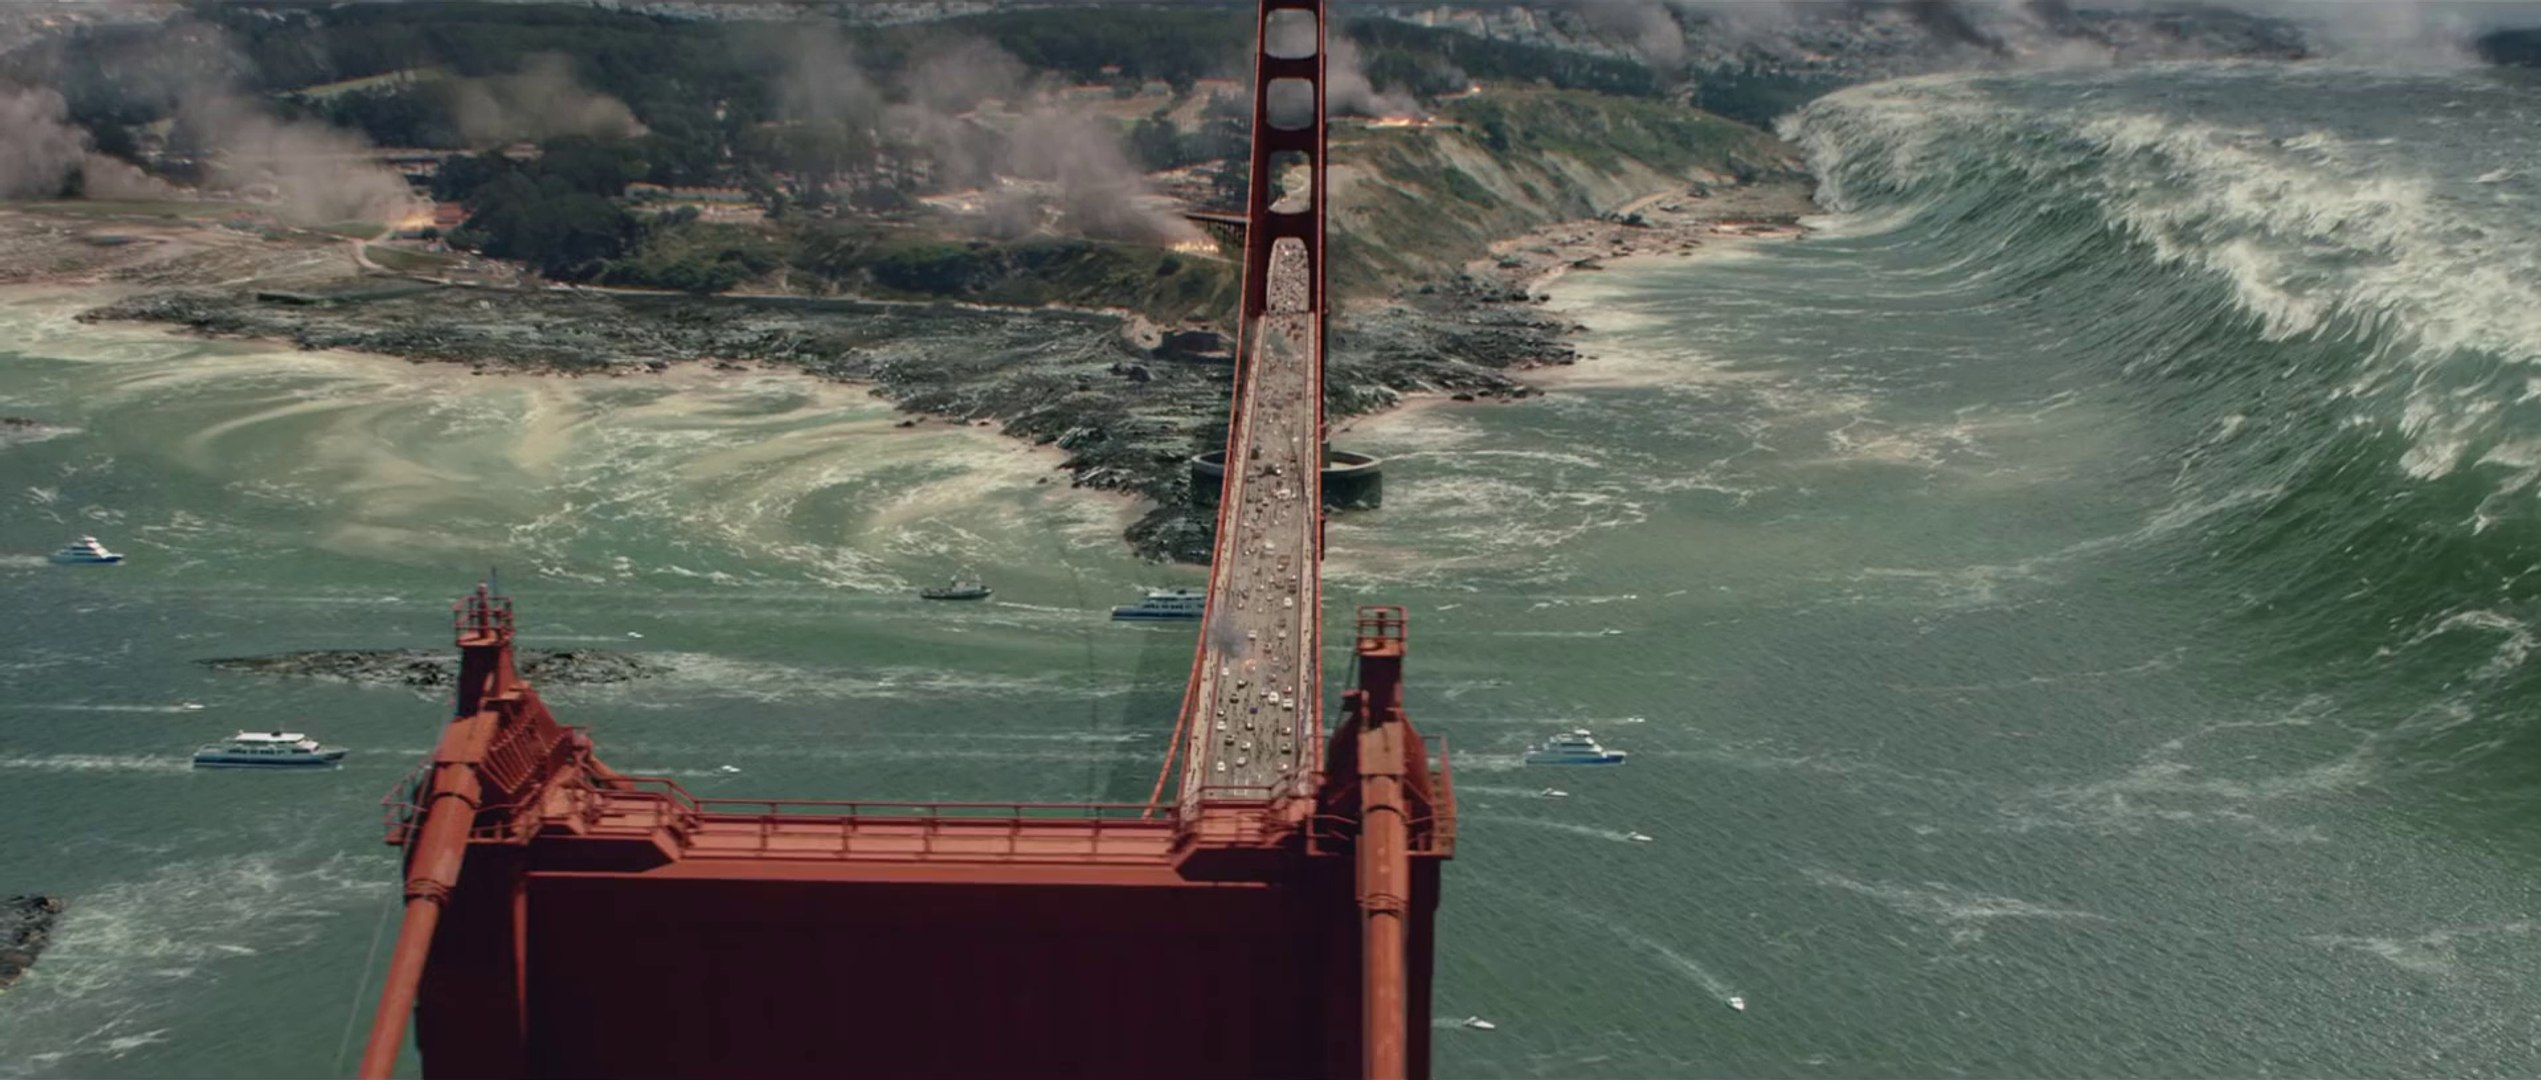 San Andreas - Official Trailer 2 [HD] |San Andreas Official Trailer New